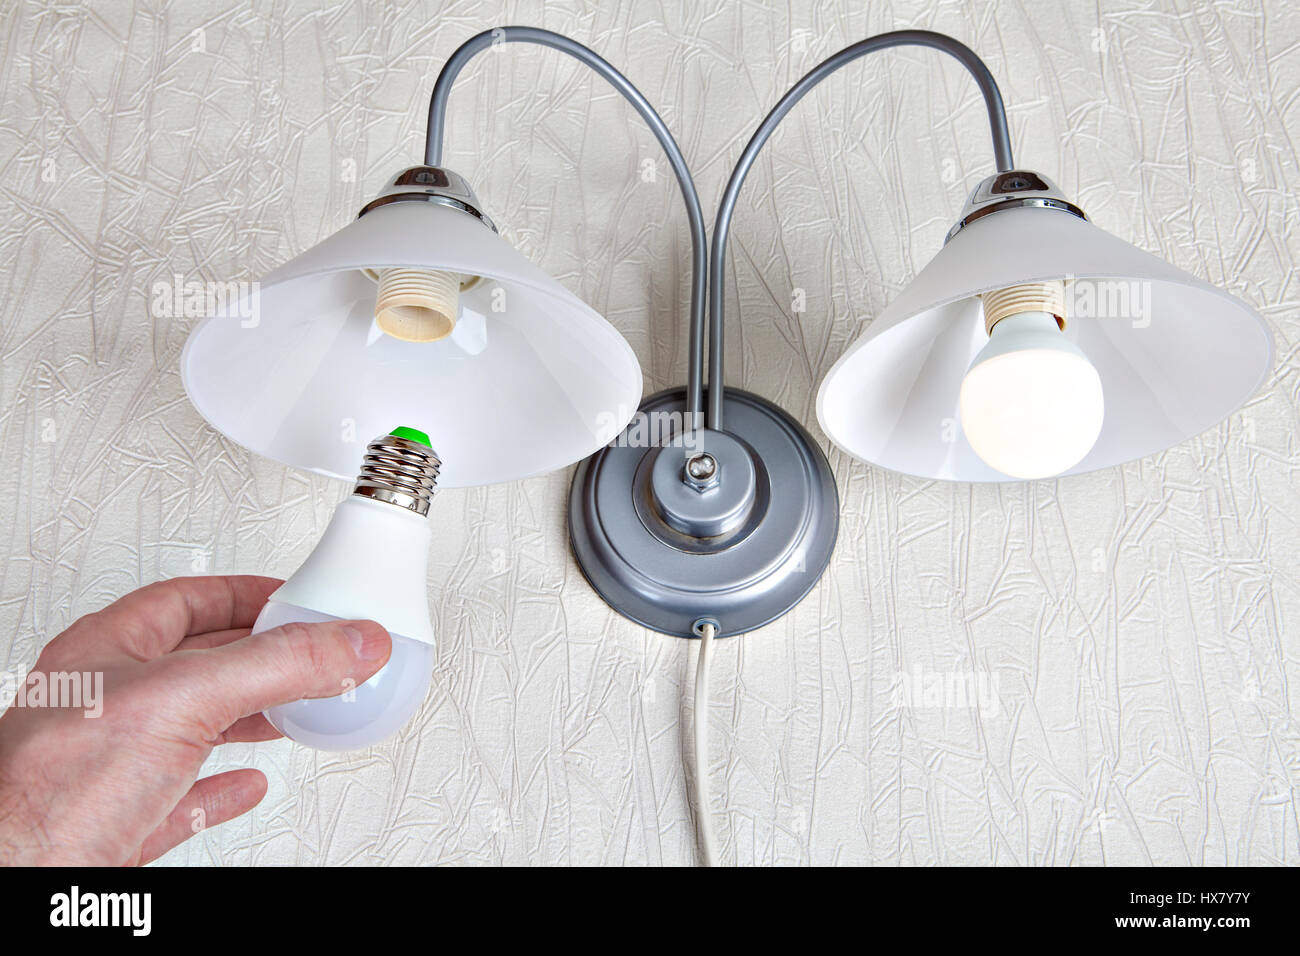 Replacing The Electric Light Bulbs In A Household Wall Lamp, LED Light Bulb  In Human Hand, Close Up.